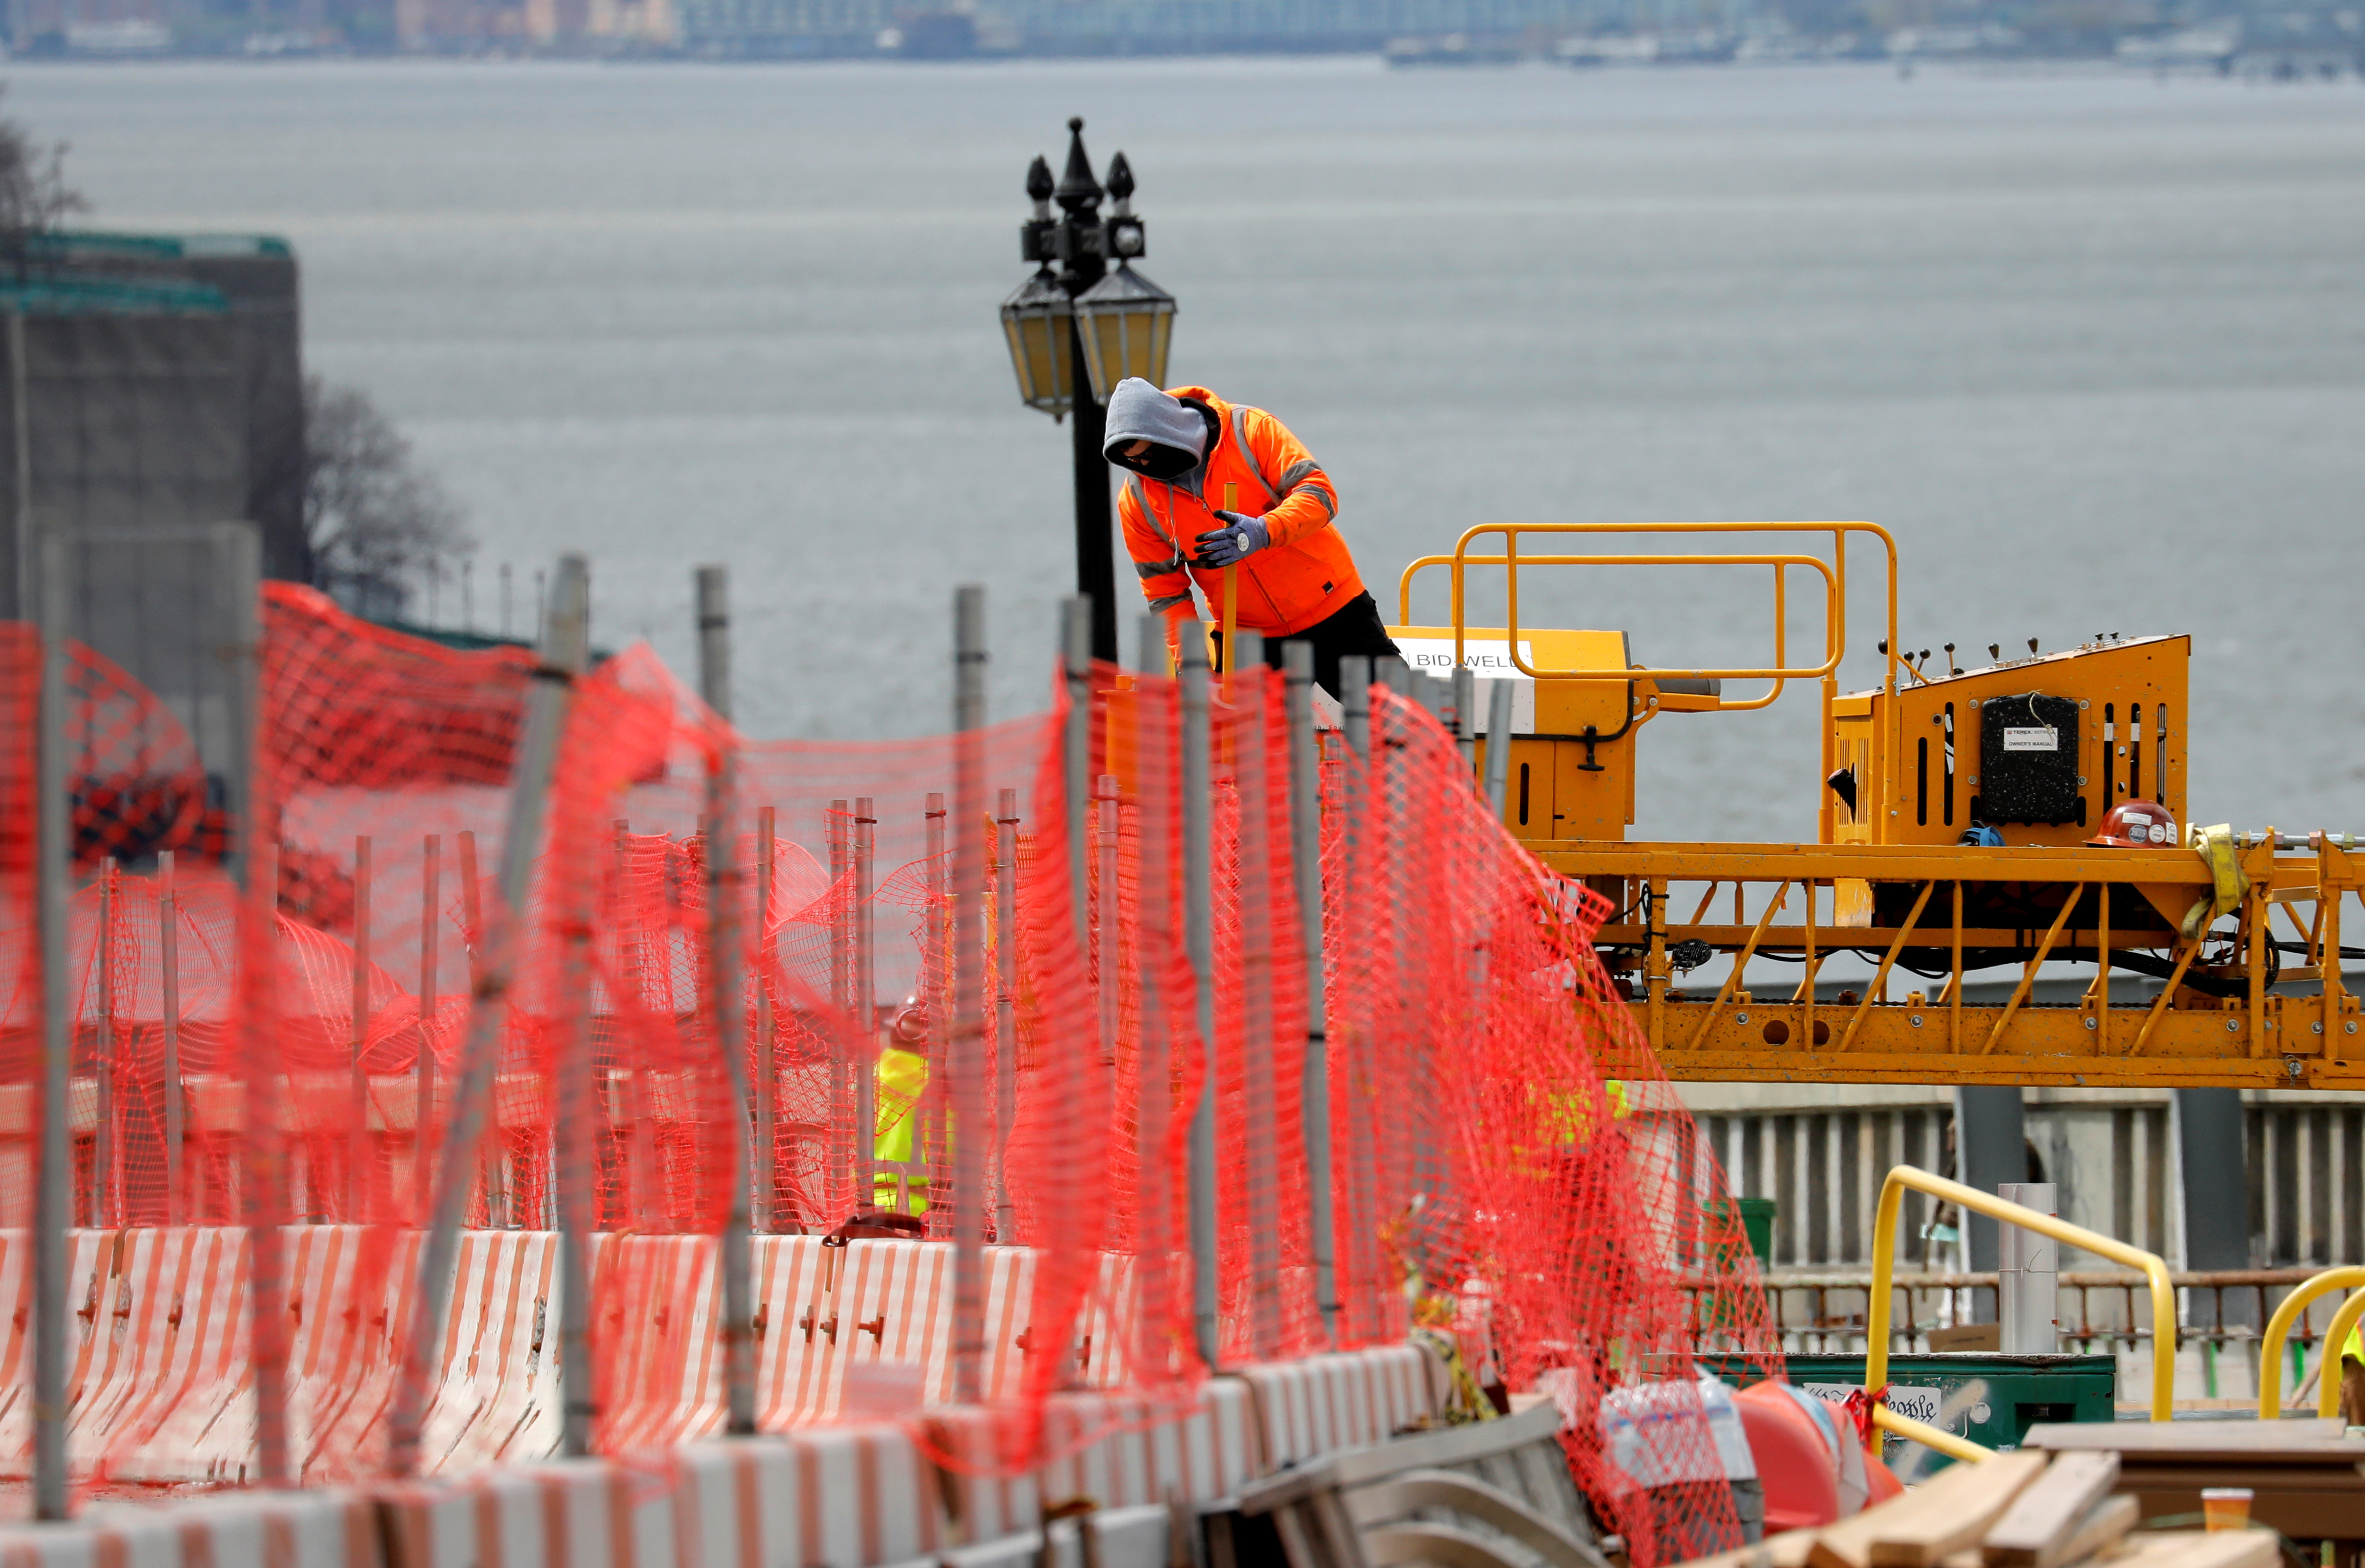 A construction worker climbs above a line of fencing at the site of a large public infrastructure reconstruction project of an elevated roadway and bridges in upper Manhattan in New York City, New York, U.S., April 22, 2021. REUTERS/Mike Segar